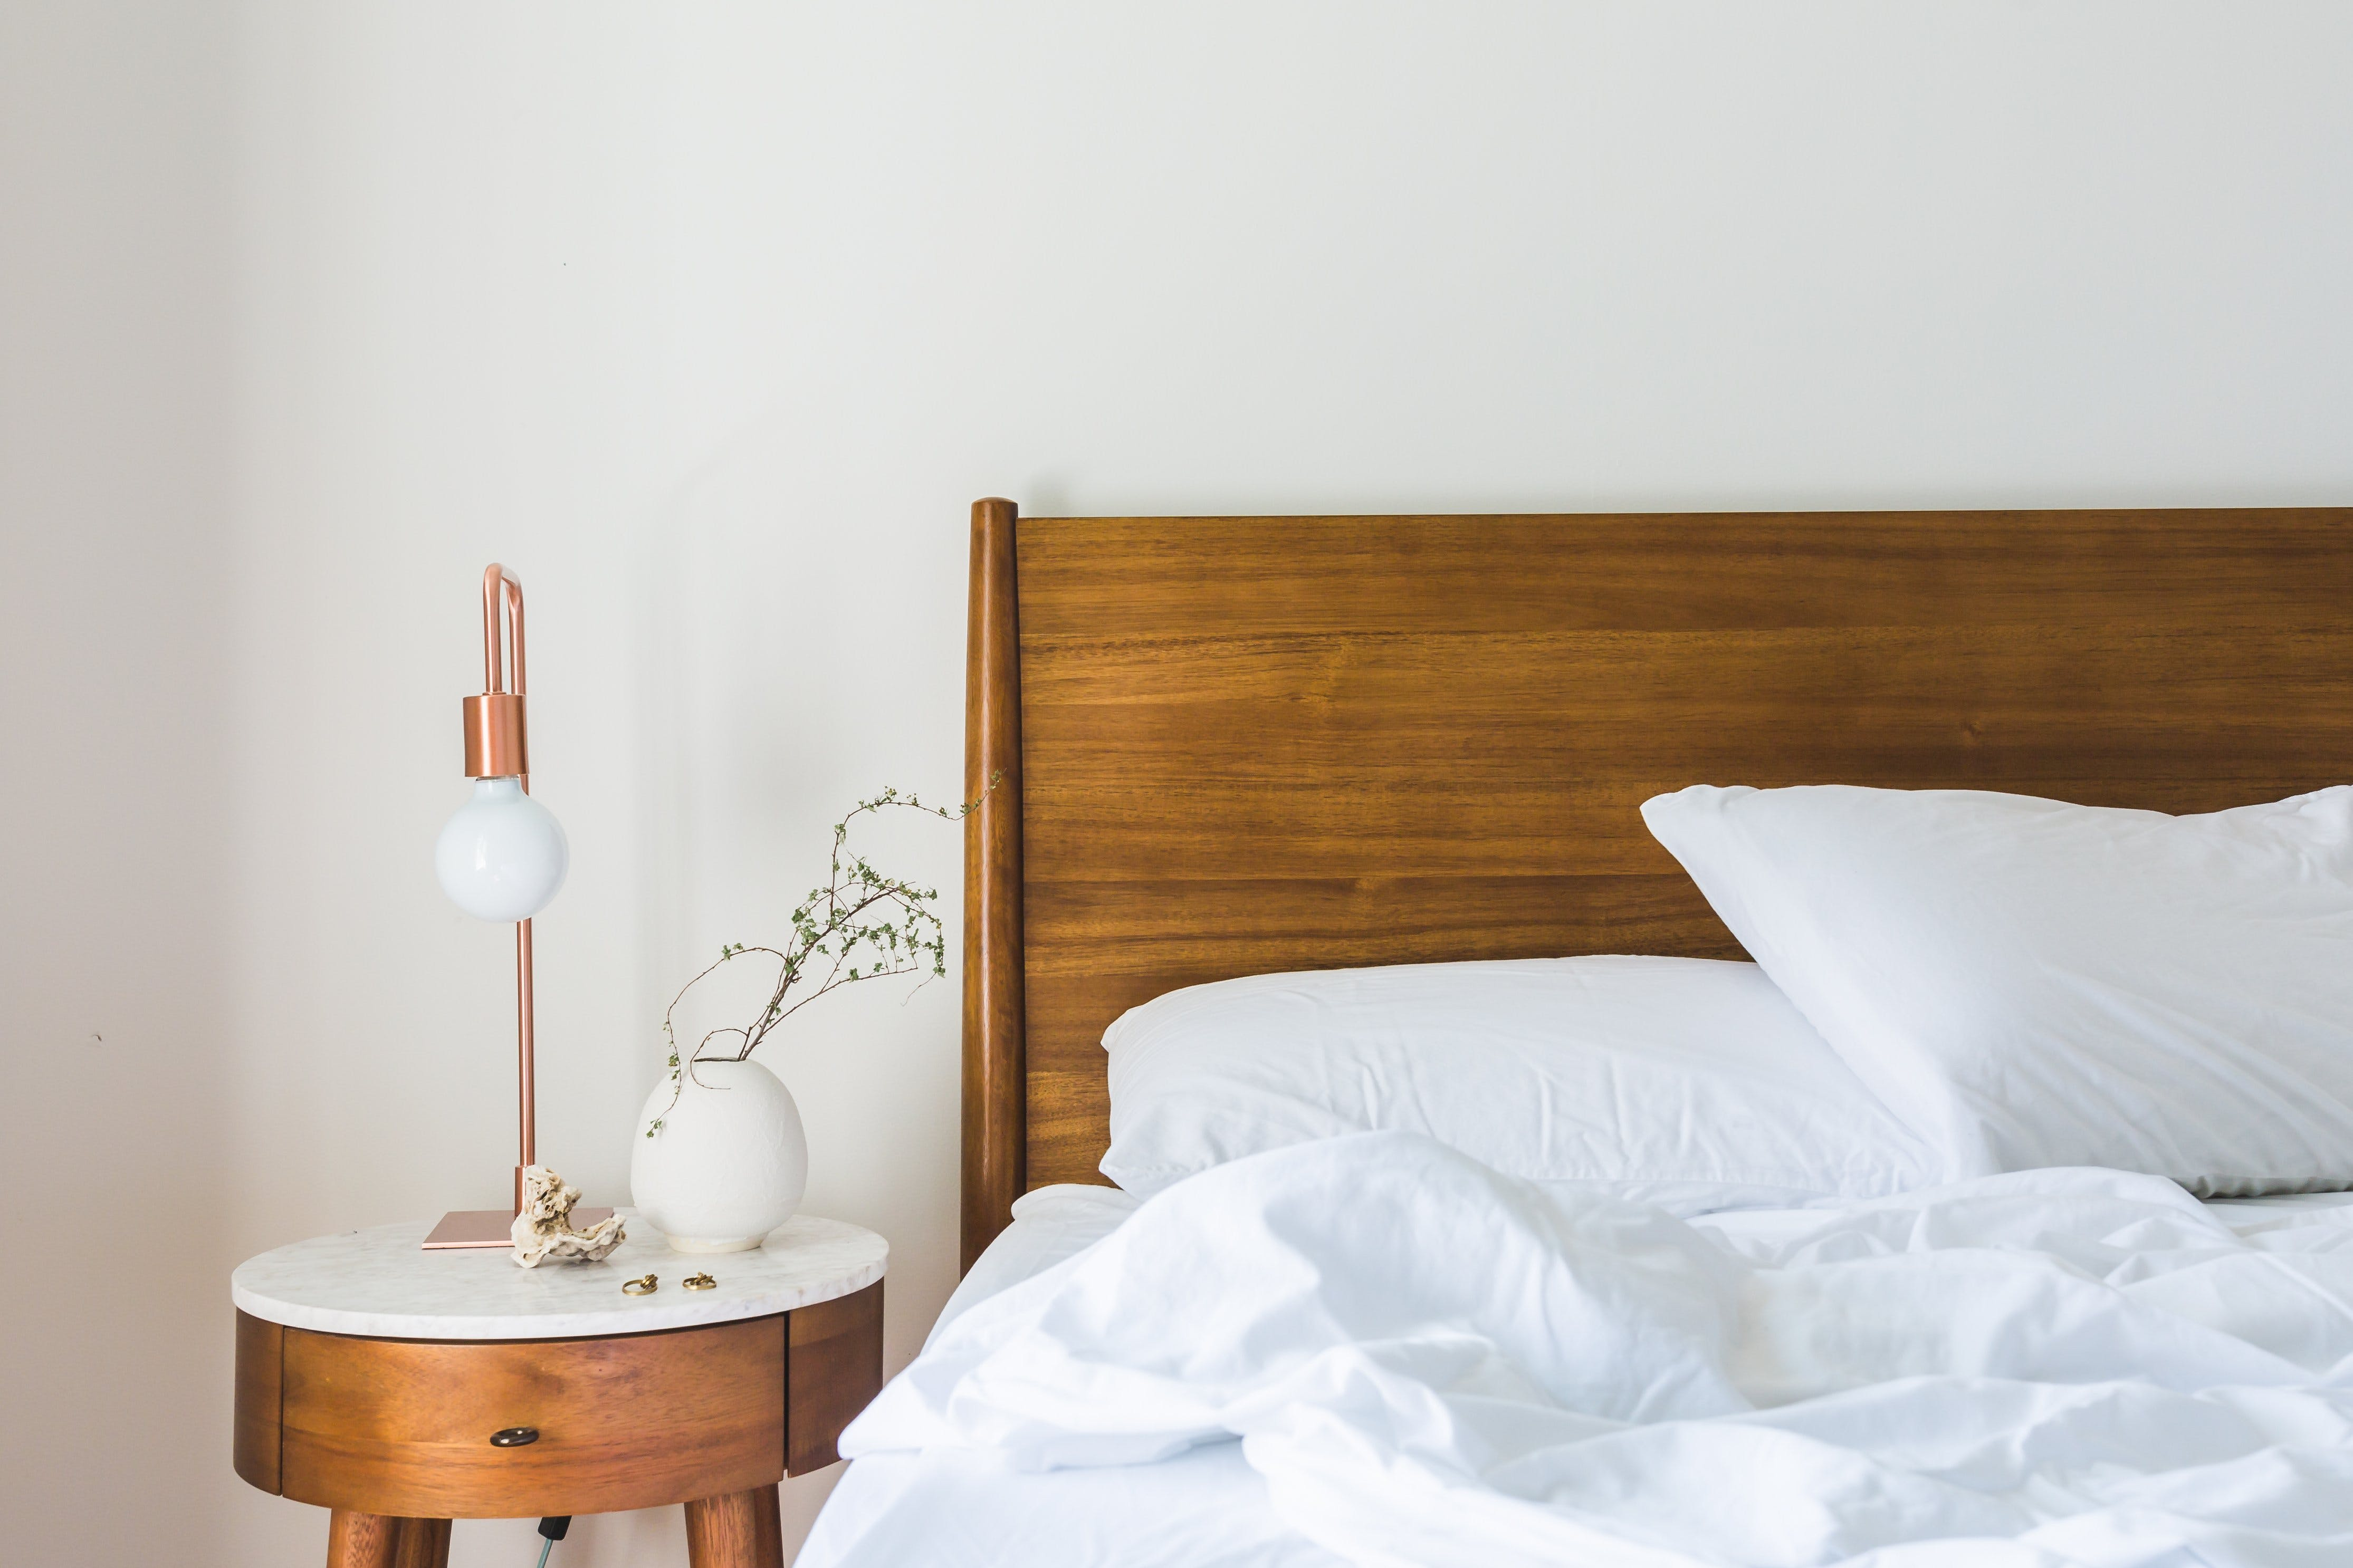 Free stock photo of bed, bedroom, table, lamp